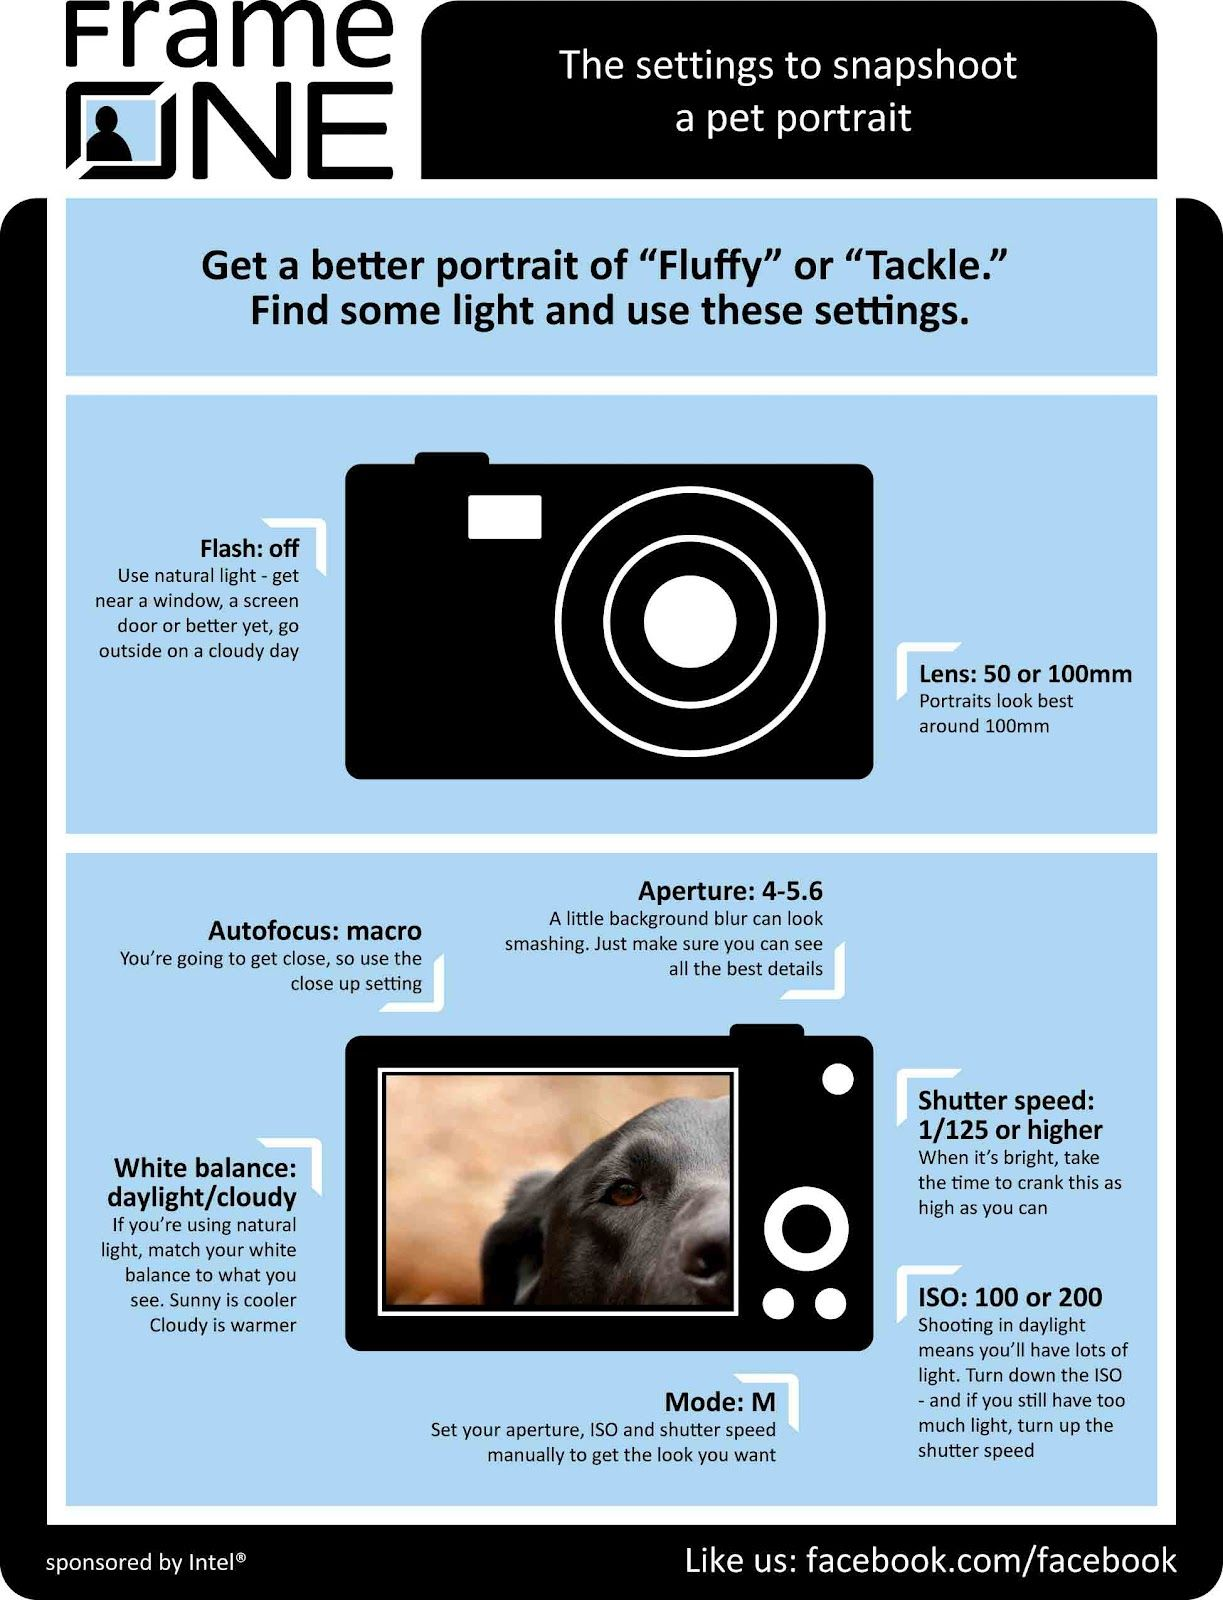 Frame One: How to snapshoot a pet - the settings.